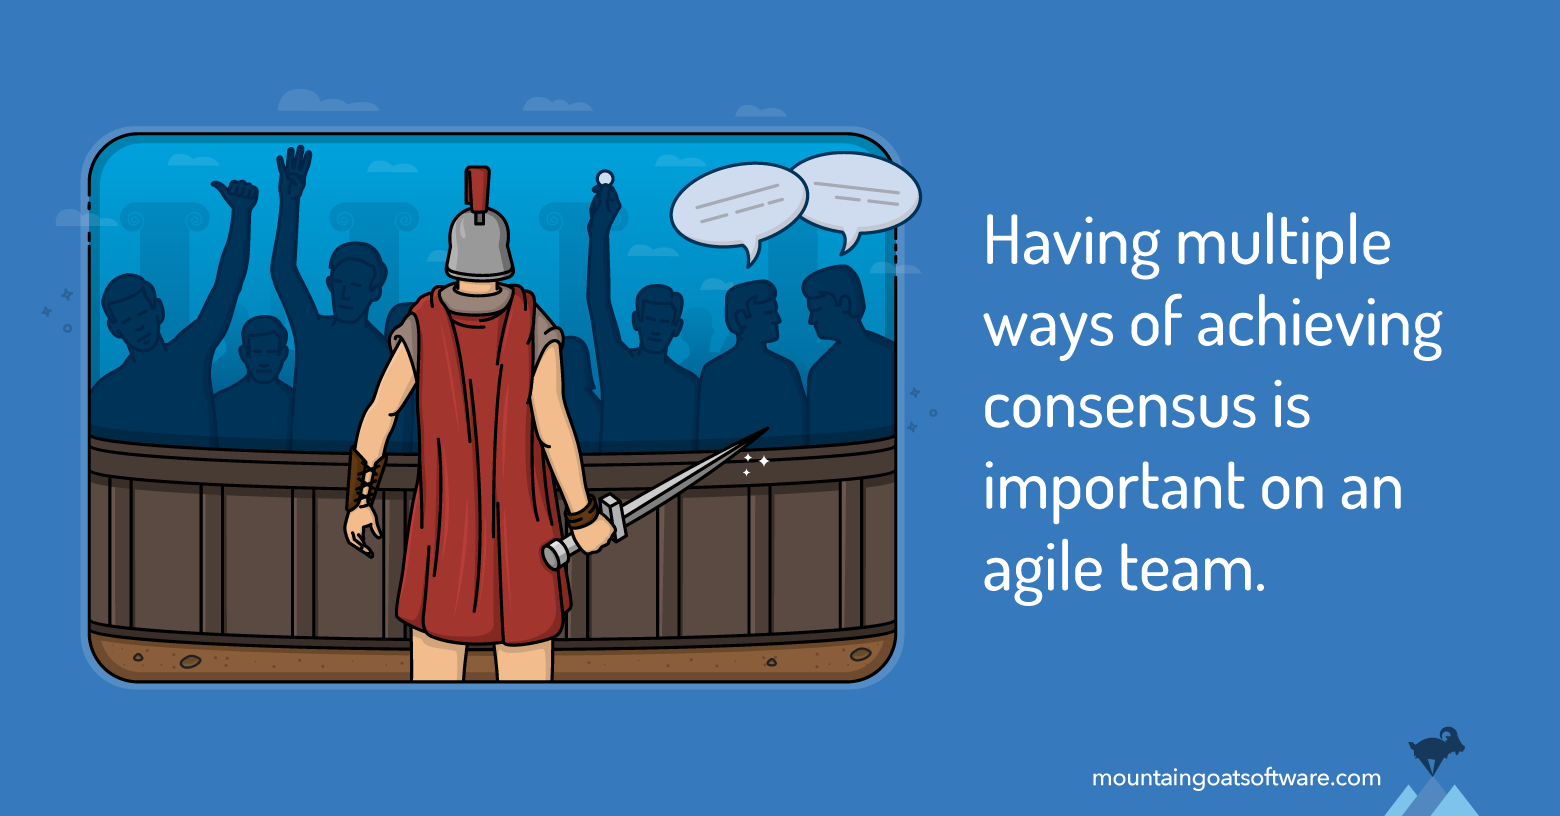 Four Quick Ways to Gain or Assess Team Consensus